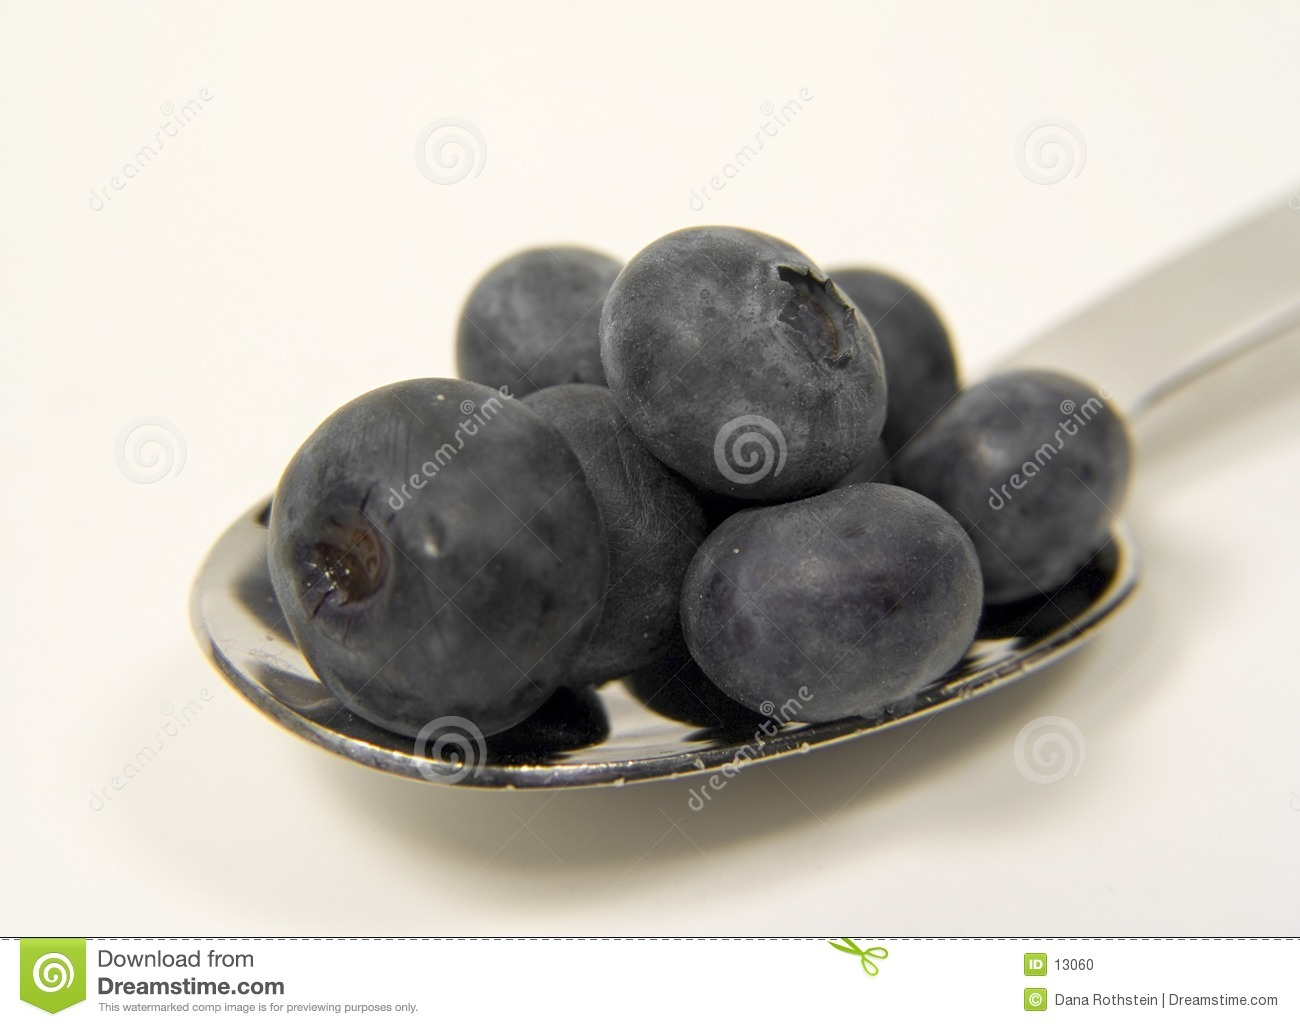 Spoonful of Blueberries